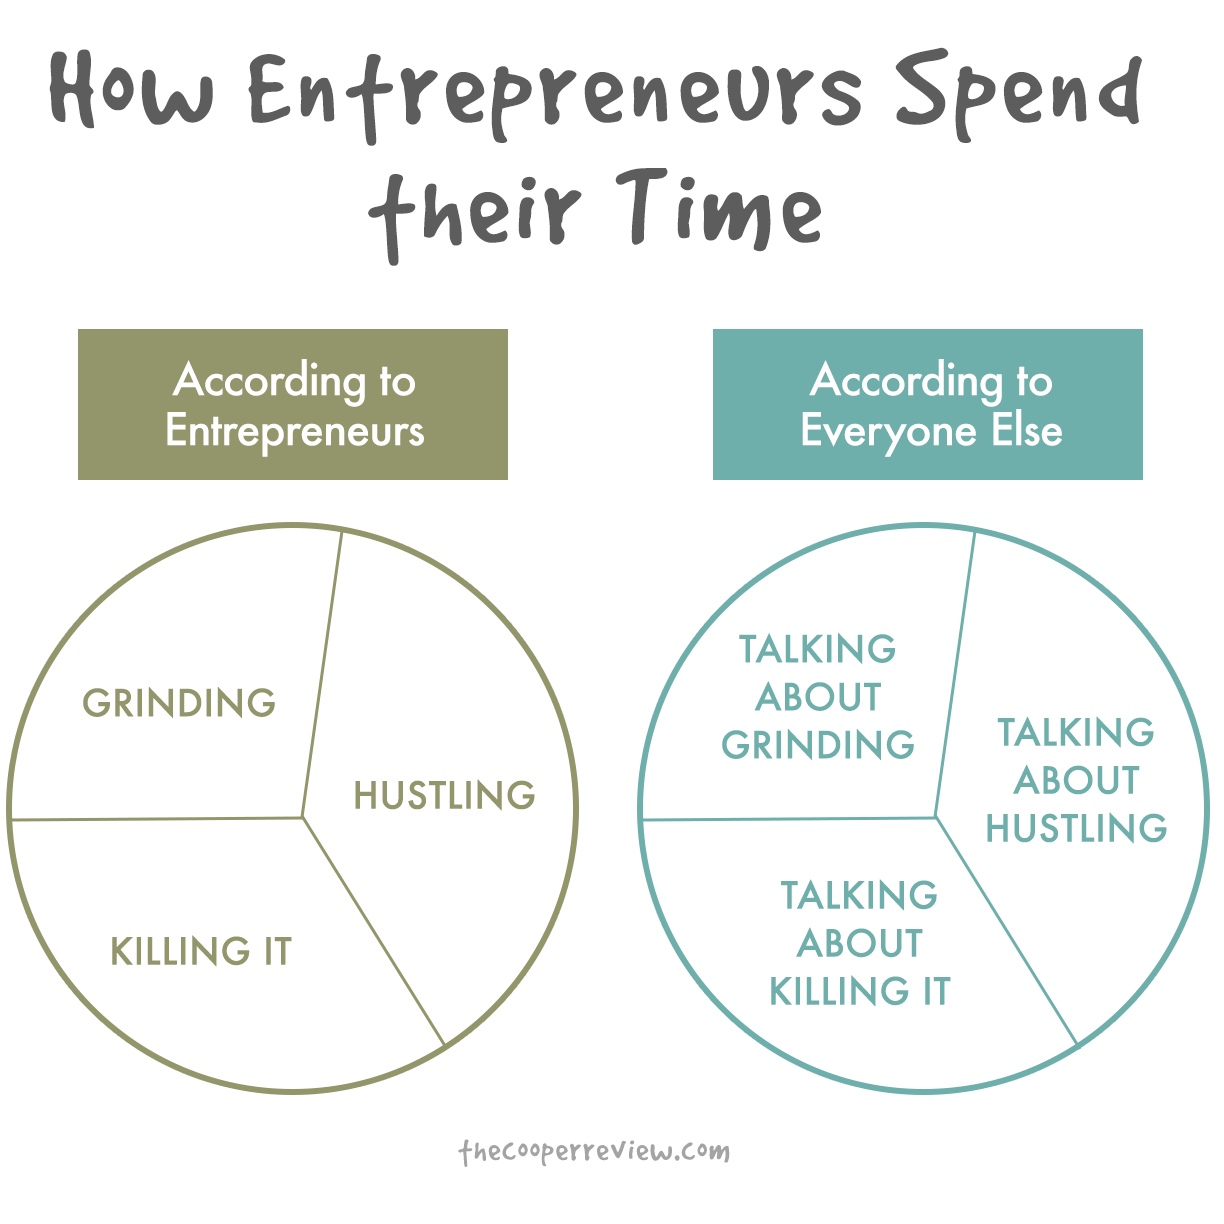 How Entrepreneurs Spend Their Time